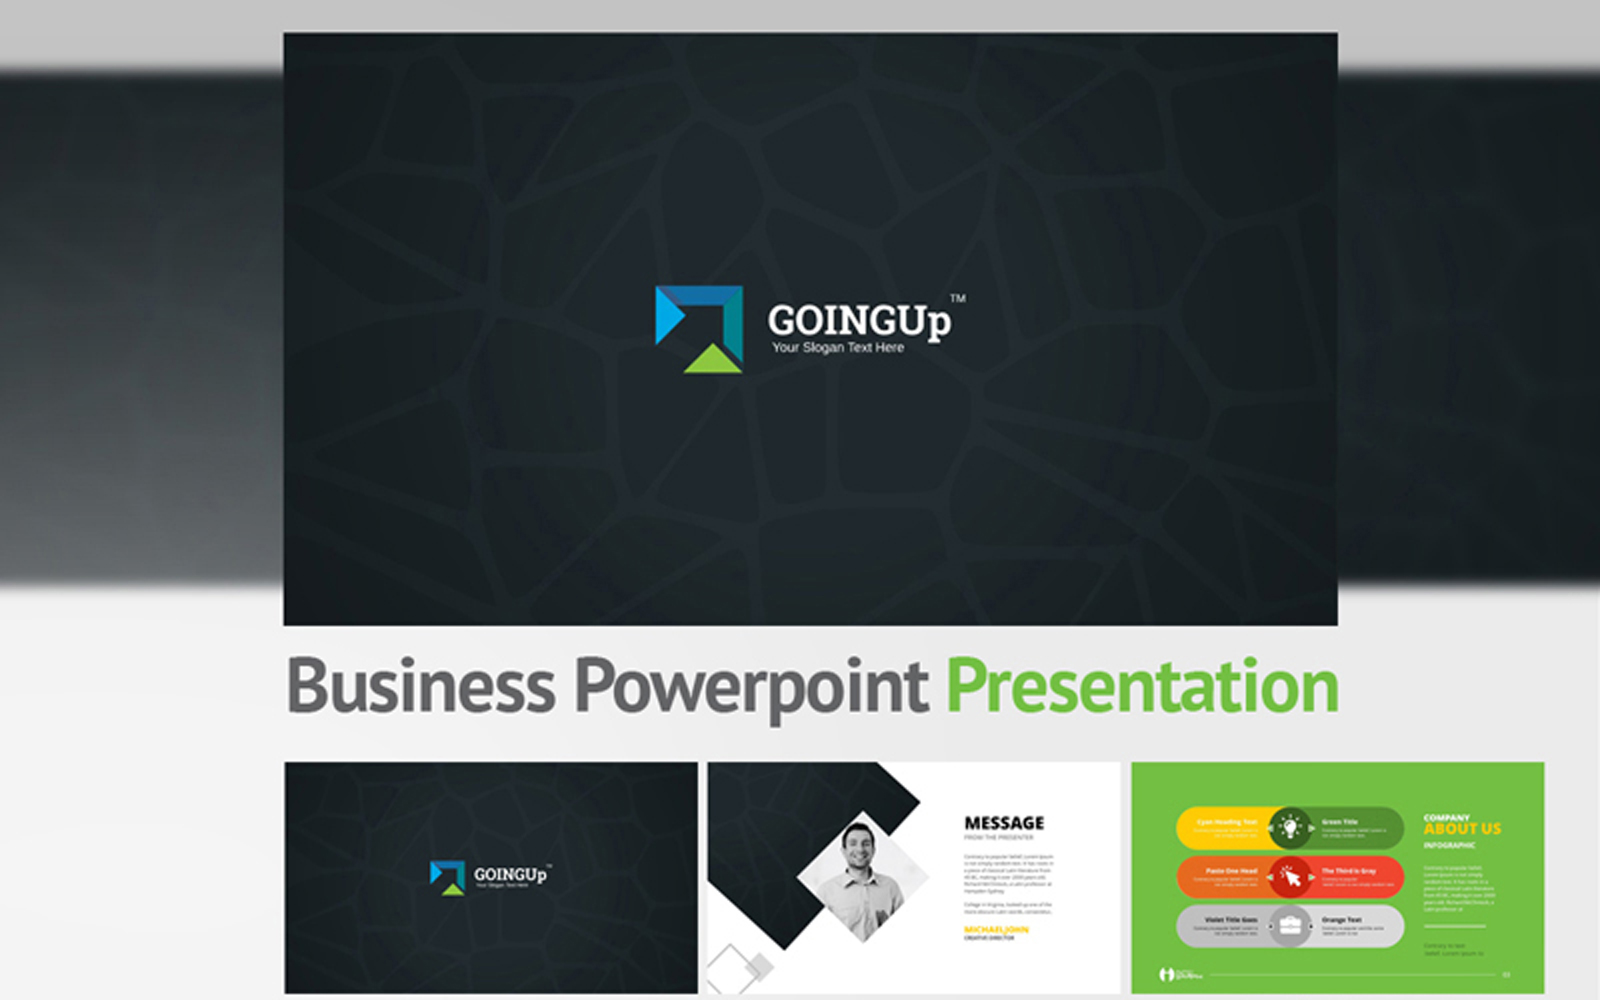 Goingup PowerPoint Template